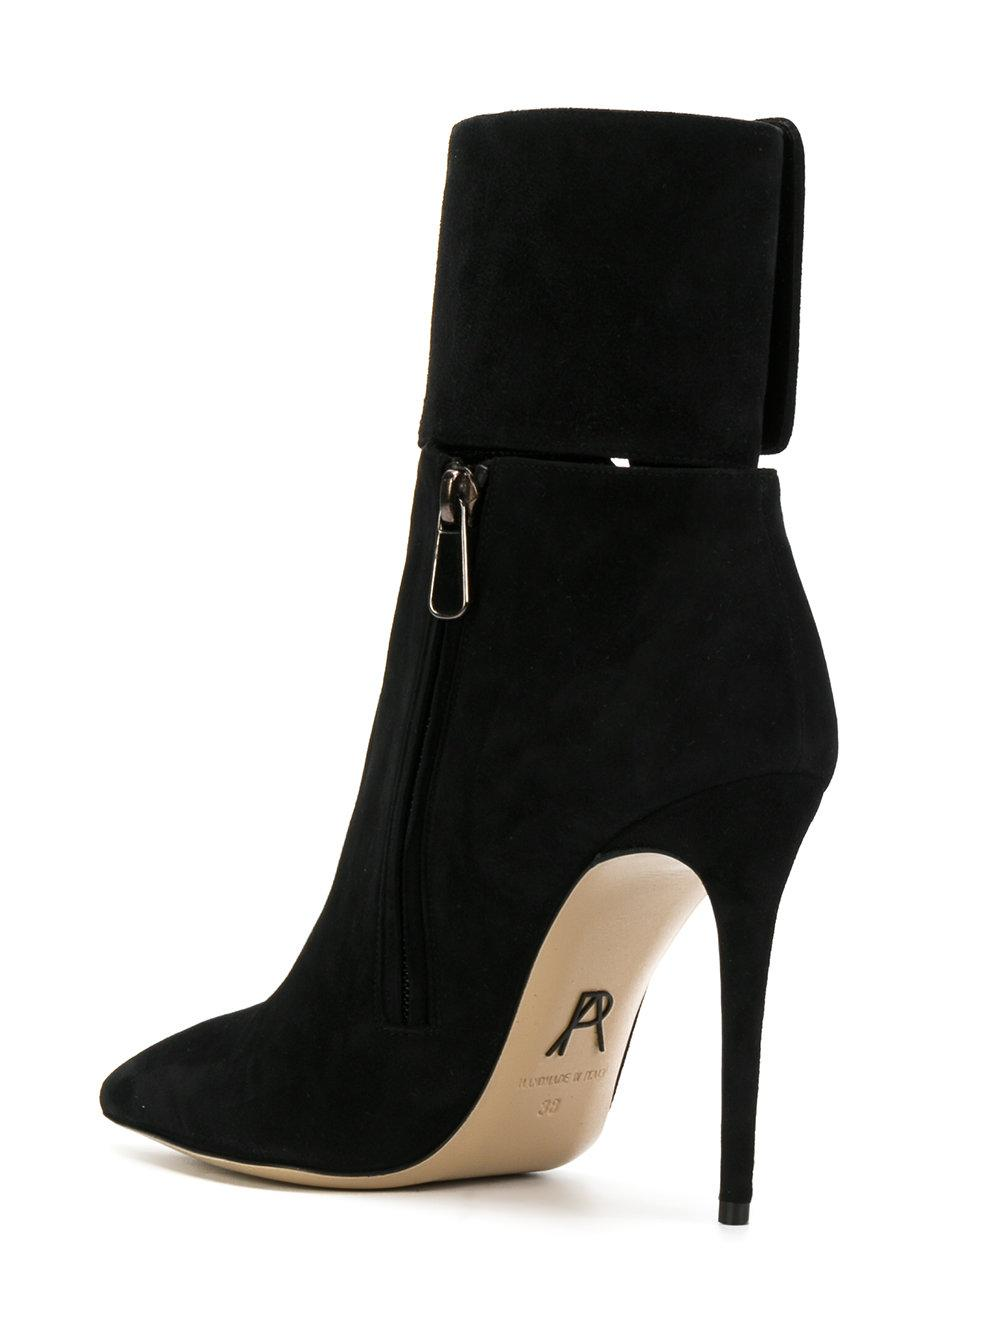 Paul Andrew Leather Pointed Toe Boots in Black